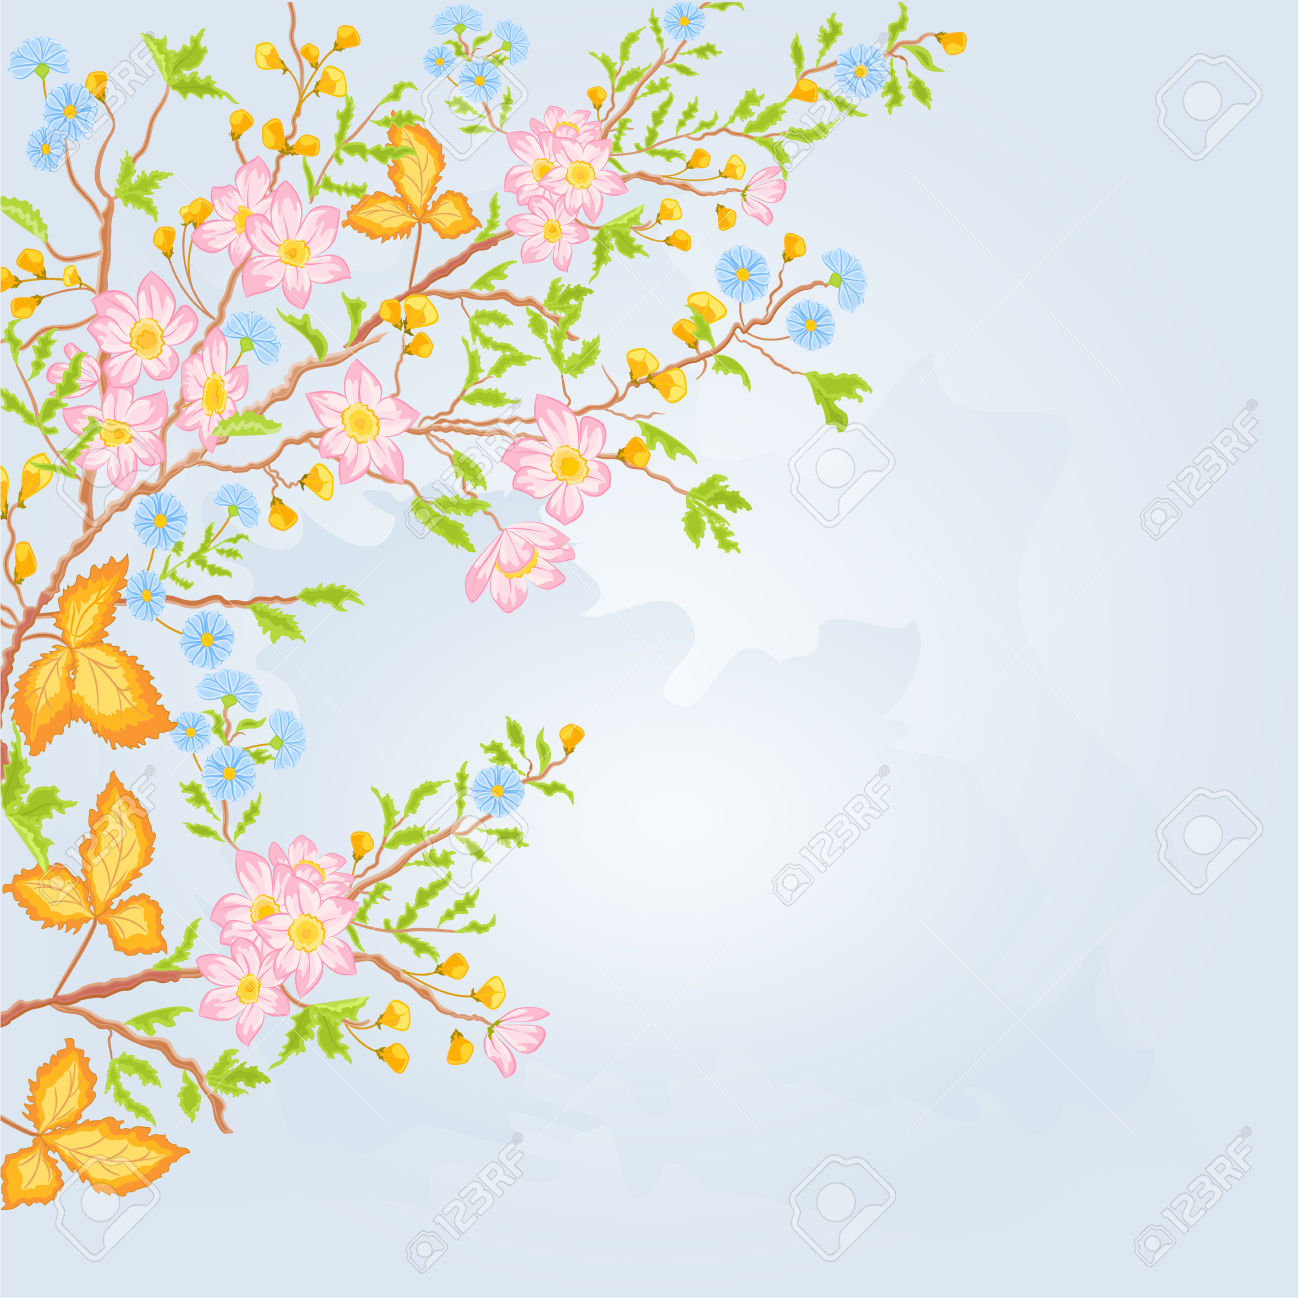 Twig Shrub Whit Spring Flowers Background Spring Theme Vector.